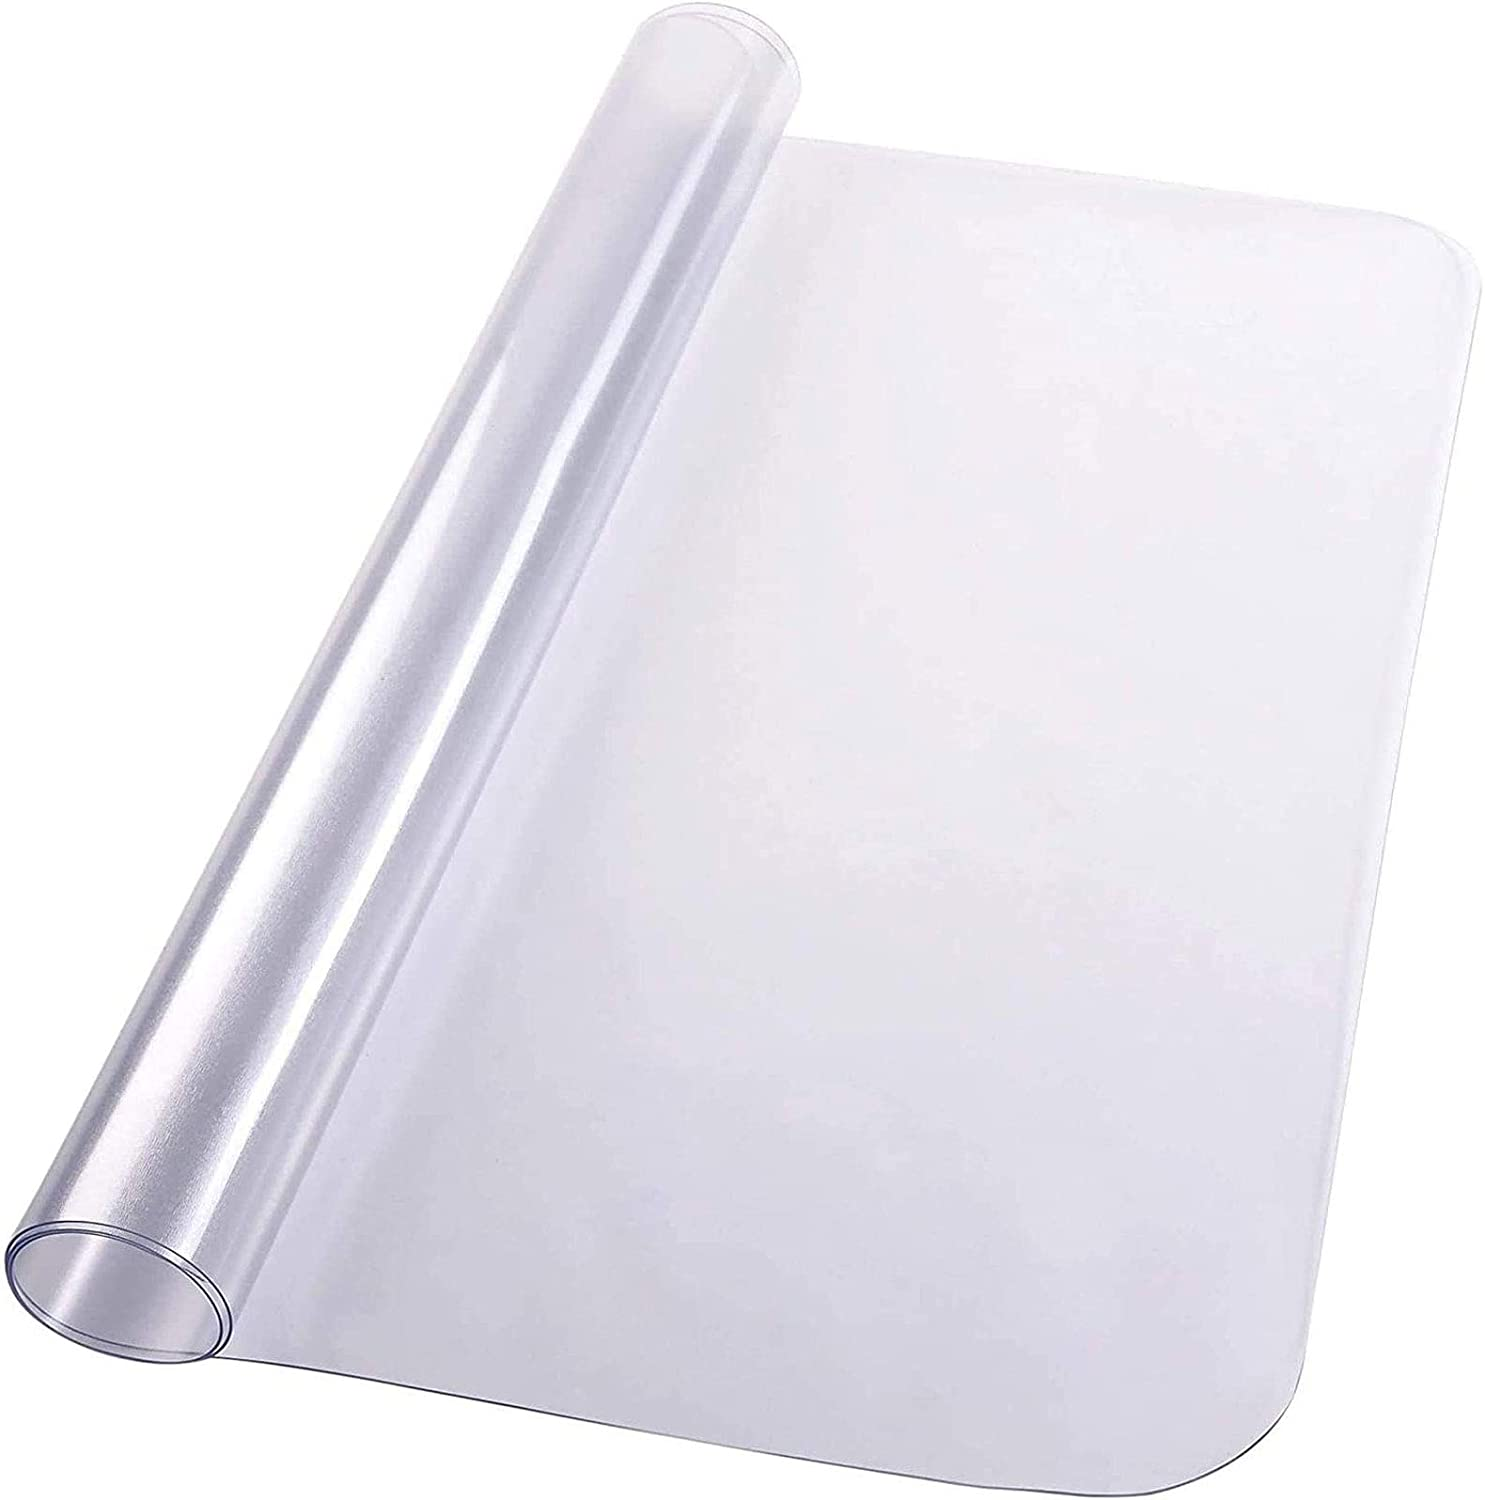 Chair Mat for Hard Floors 0.5 Mm In a popularity PVC Pad 2021new shipping free shipping Desk Floo Transparent